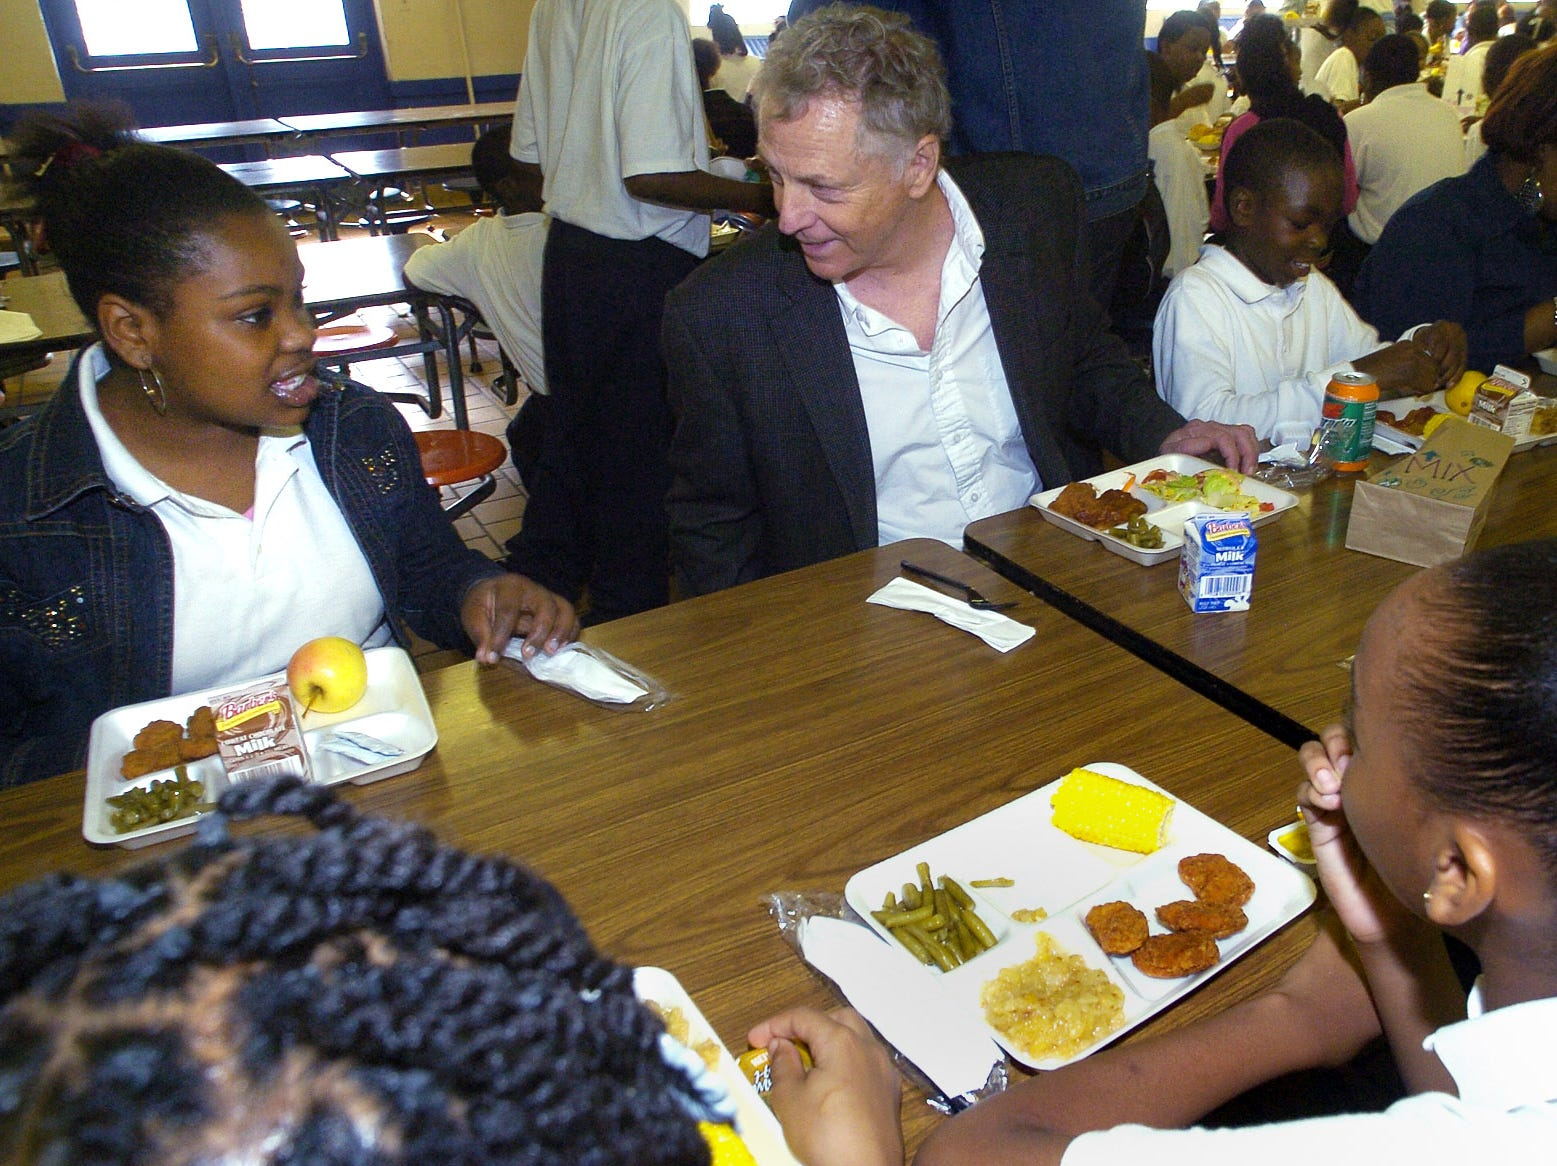 November 13, 2007 - Southern Poverty Law Center co-founder Morris Dees, right, visits with Jakira Hall, left, while eating lunch with students during the Mix It Up at Lunch Day program at Floyd Elementary School in Montgomery, Ala. on Tuesday November 13, 2007. Mix It Up is part of the Teaching Tolerance program. 10,000 schools and over four million students are taking part in the program. (Montgomery Advertiser, Mickey Welsh)